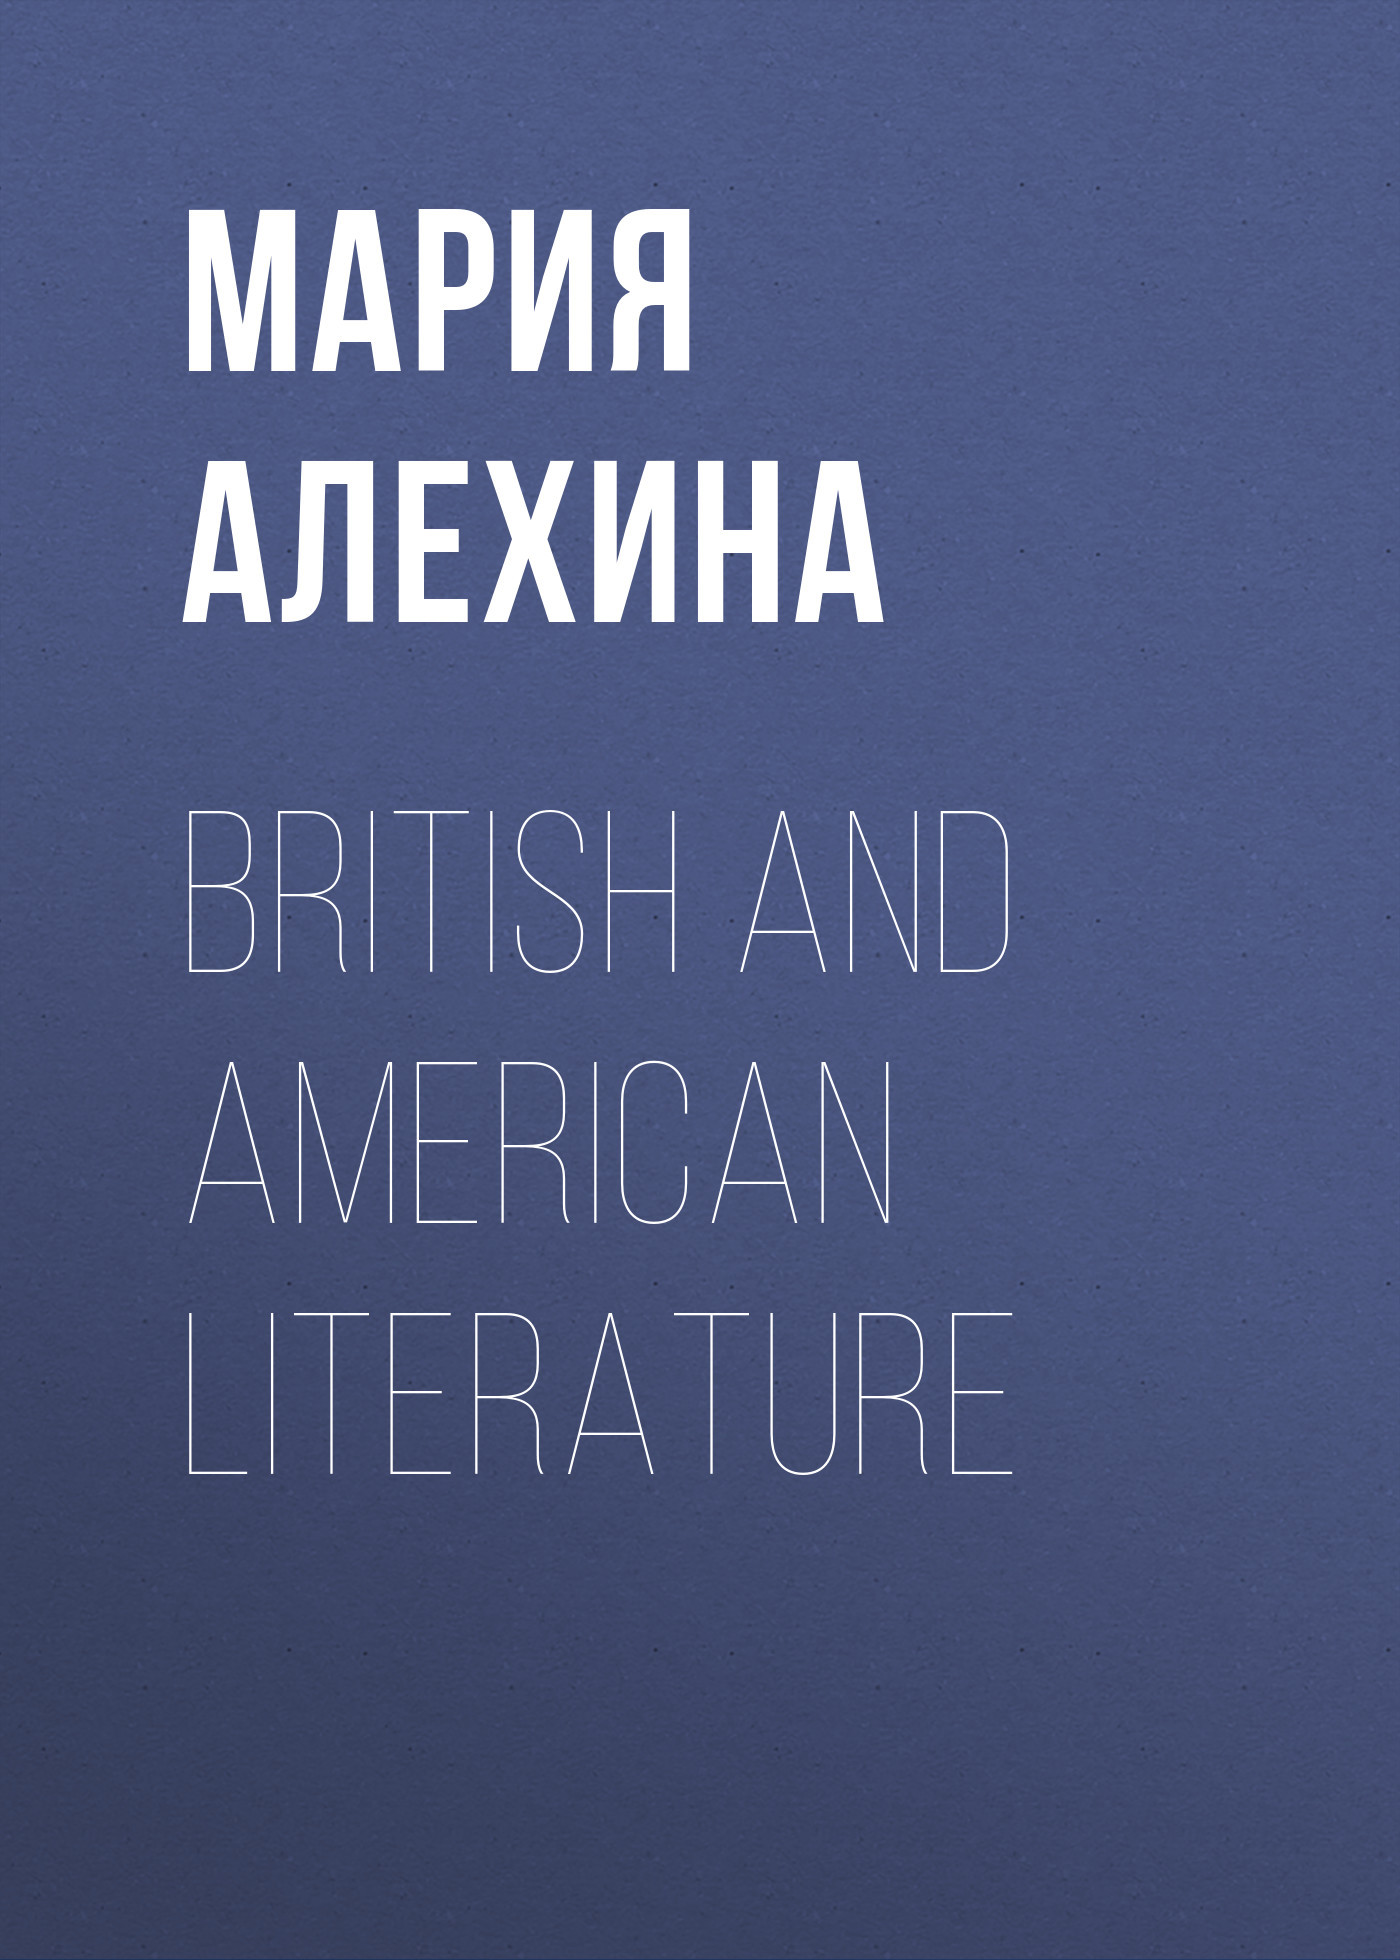 British and American Literature